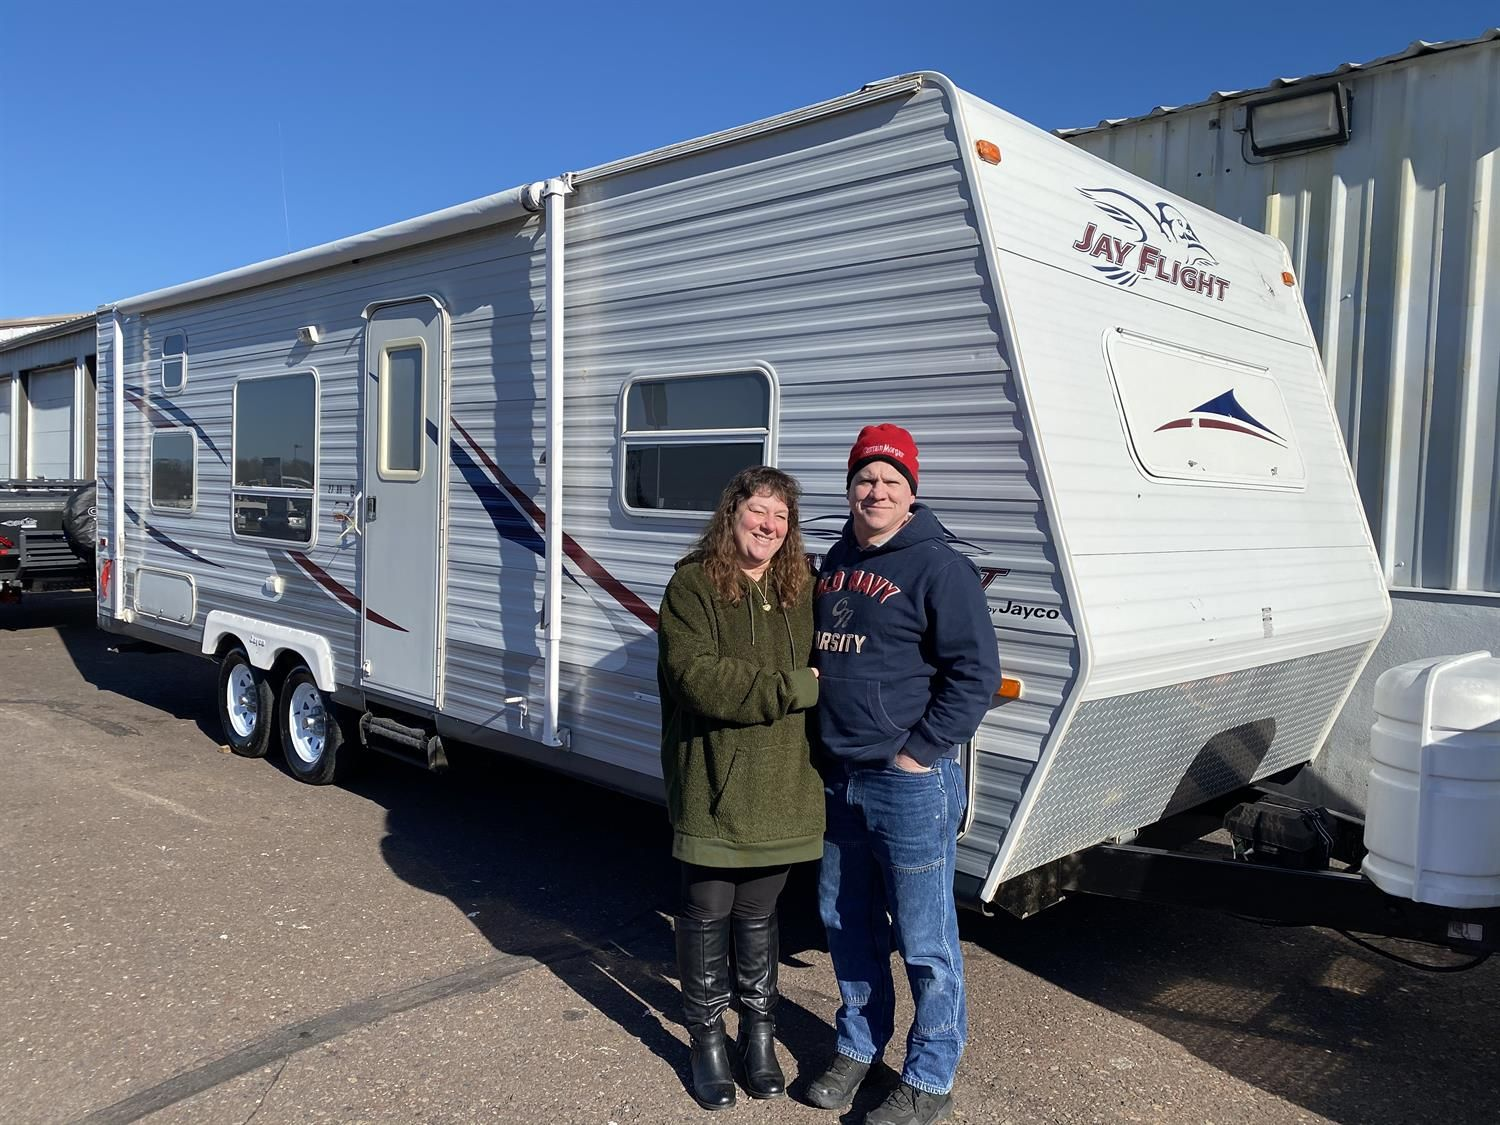 Shawn And Marianne Wishing You Many Miles Of Smiles And Congratulations On Your 2006 Jayco Jay Flight All The Best F In 2020 Jayco Recreational Vehicles Vehicles